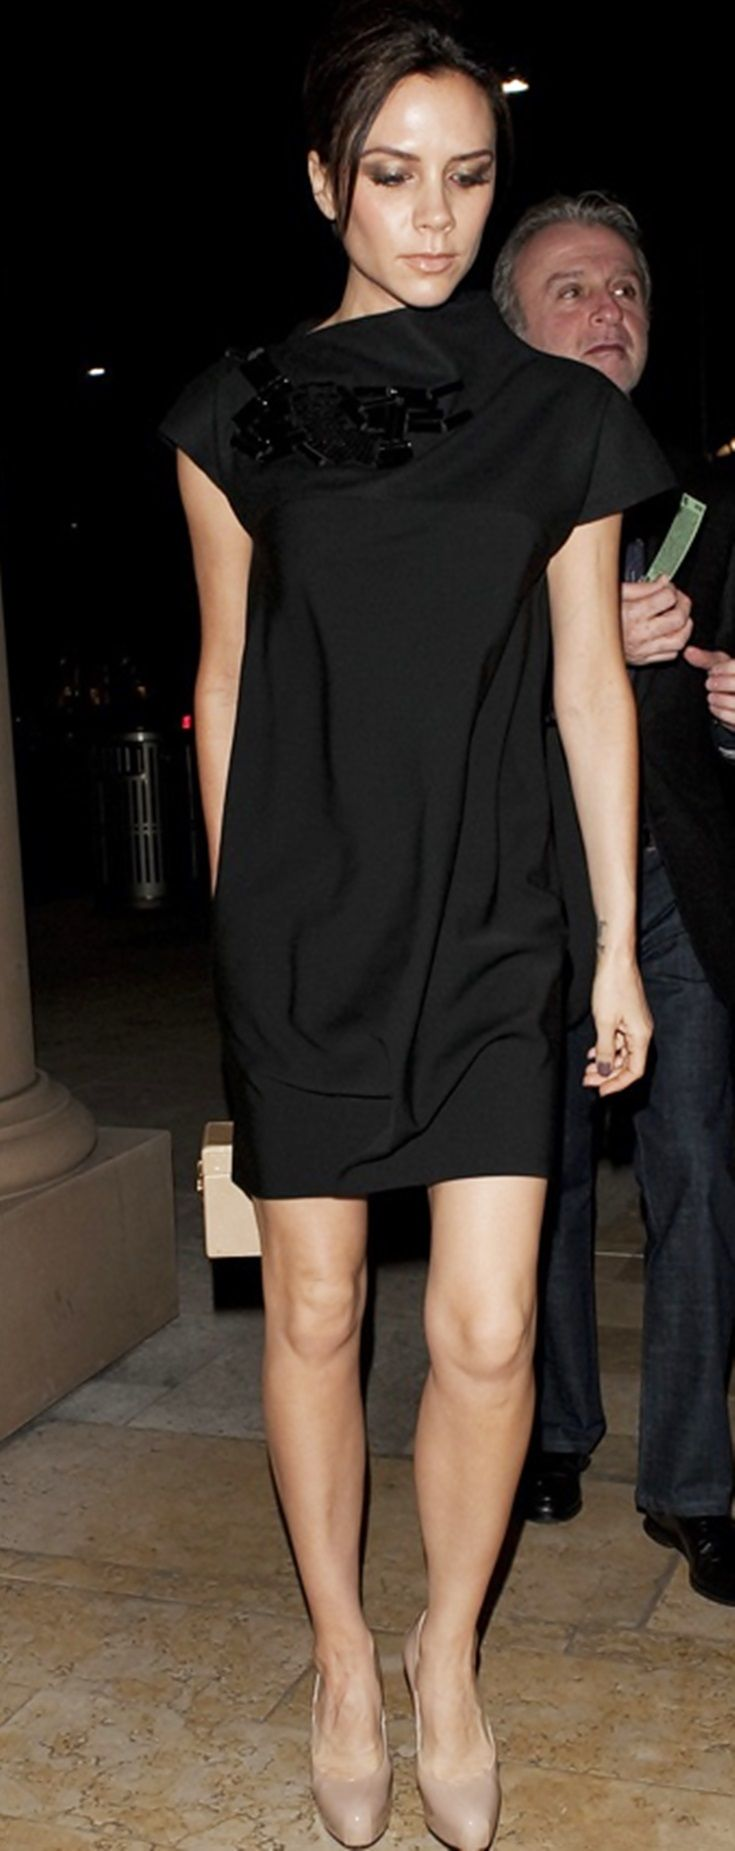 I love Victoria Beckham's style. Sleek, sophisticated and sexy with a little extra something.